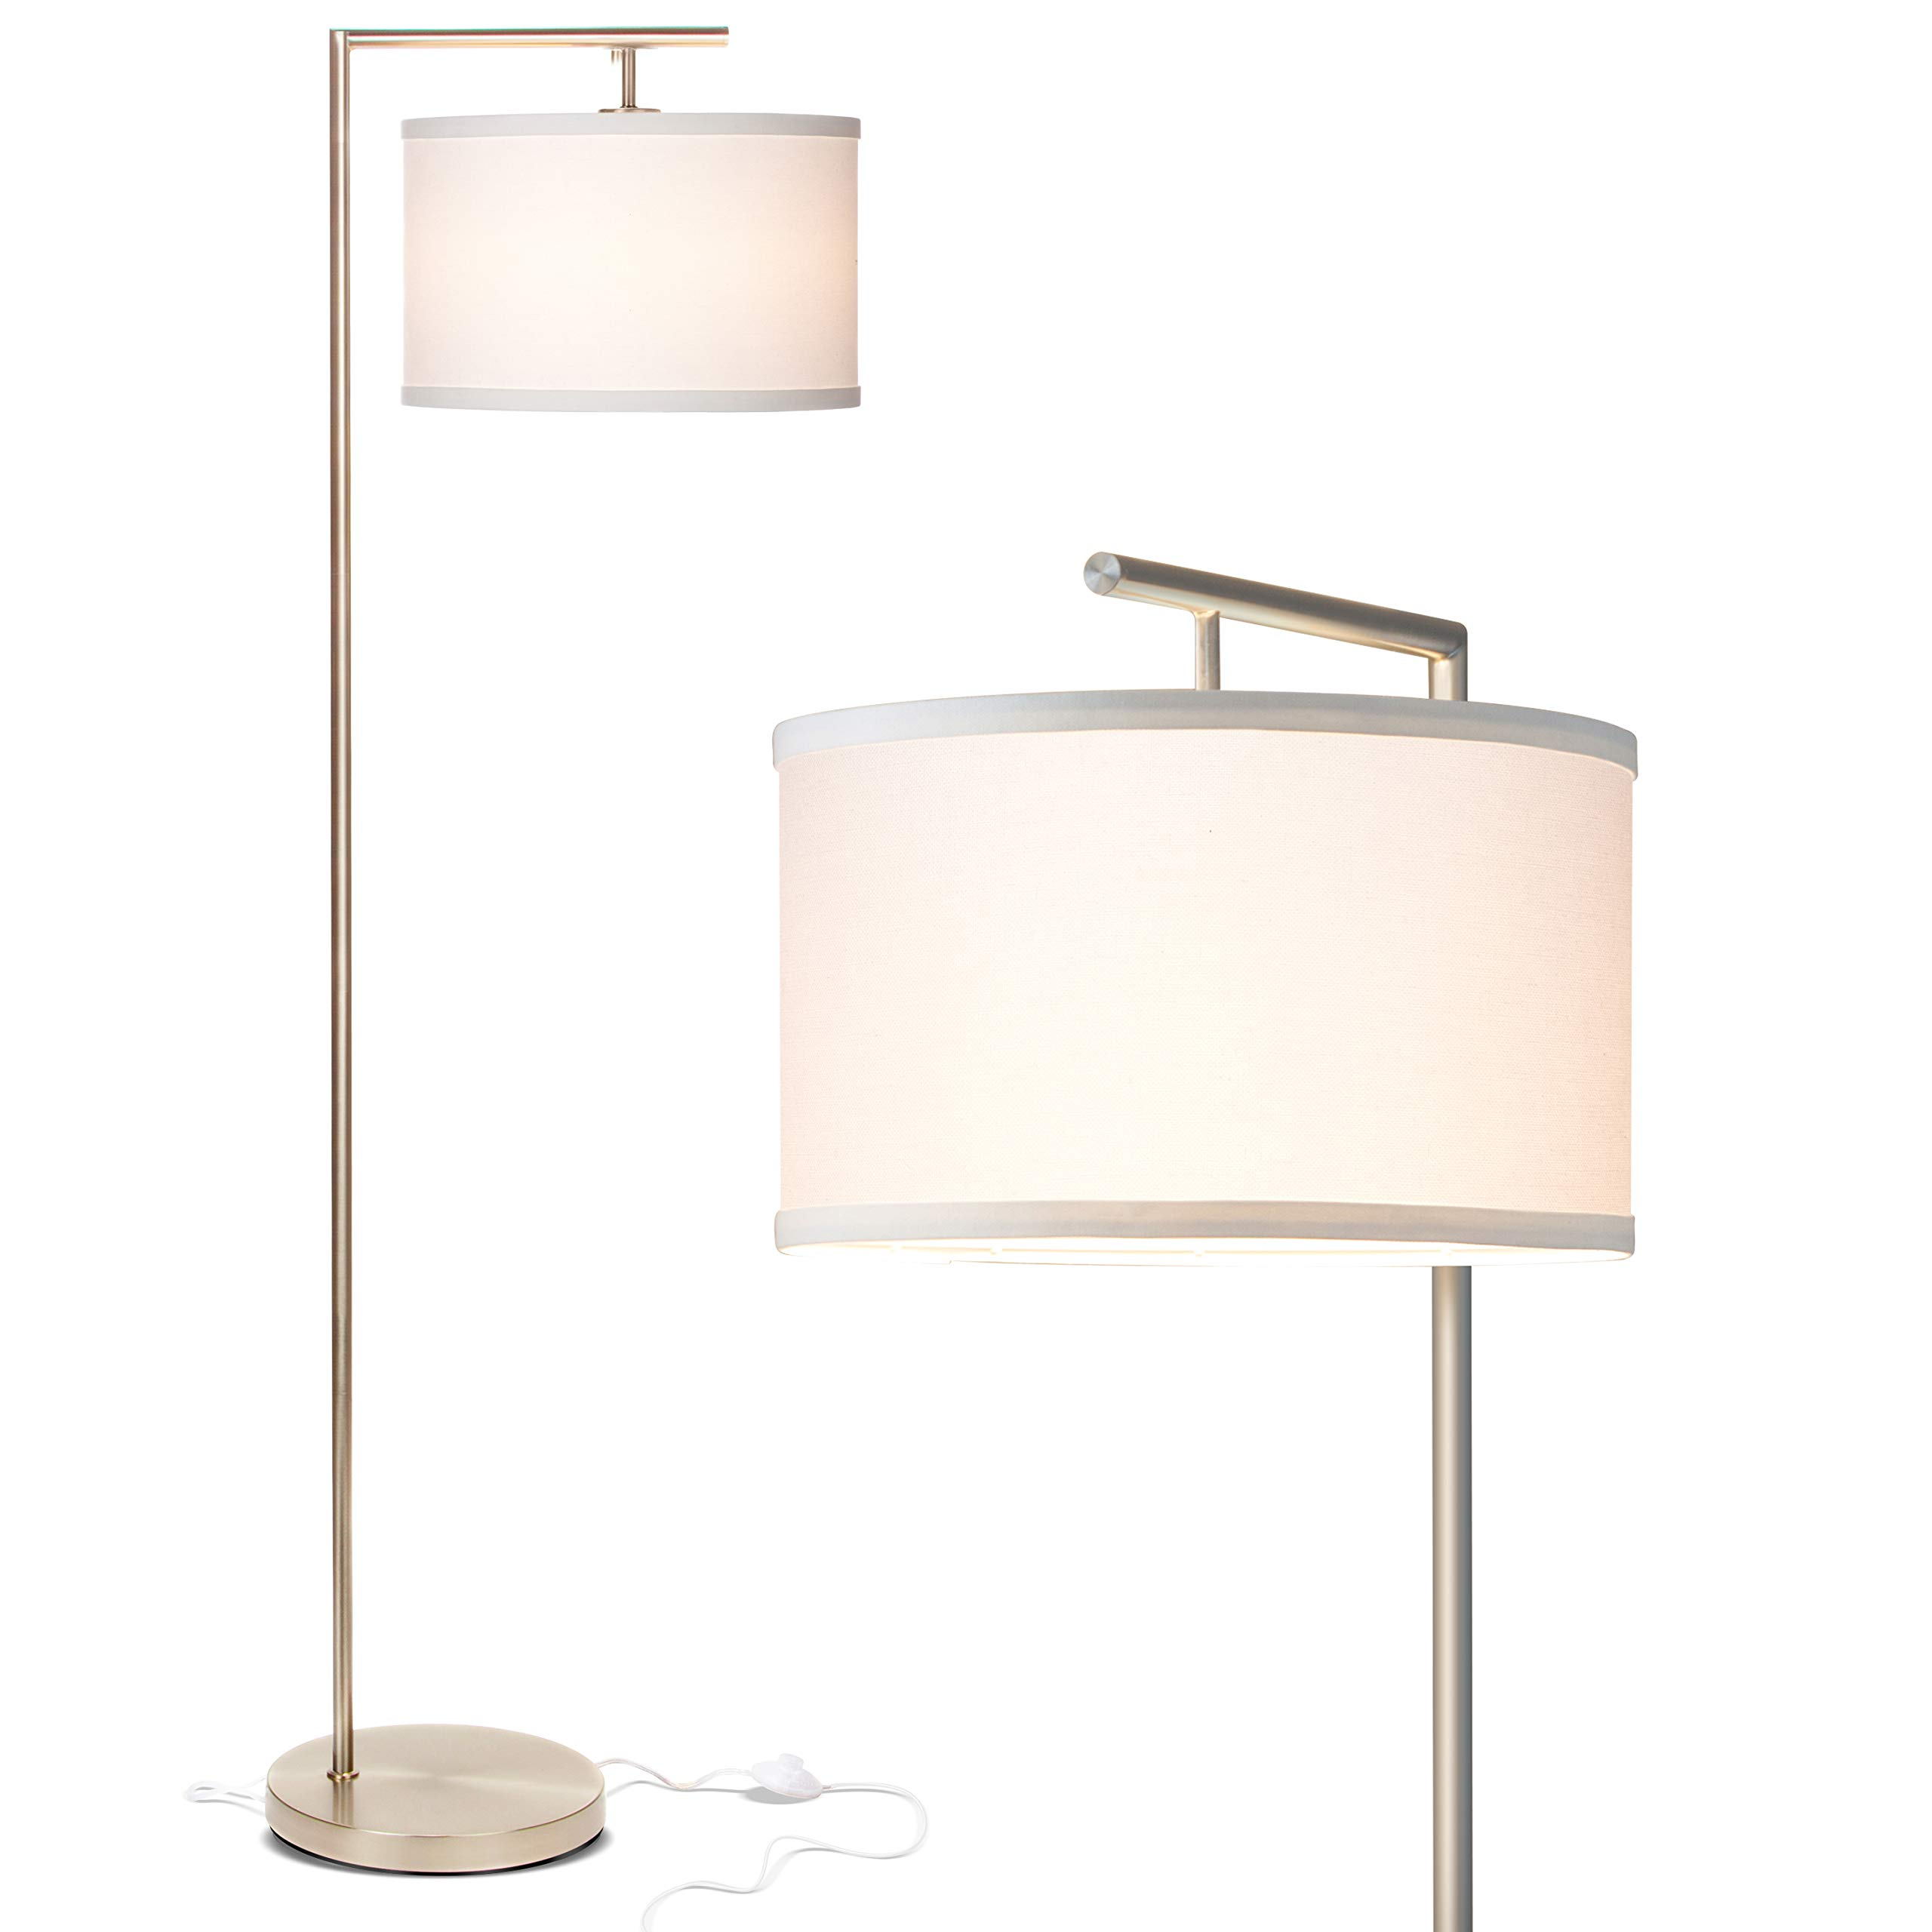 Brightech Montage Modern - LED Floor Lamp for Living Room- Standing Accent Light for Bedrooms, Office - Tall Pole Lamp with Hanging Drum Shade - Satin Nickel by Brightech